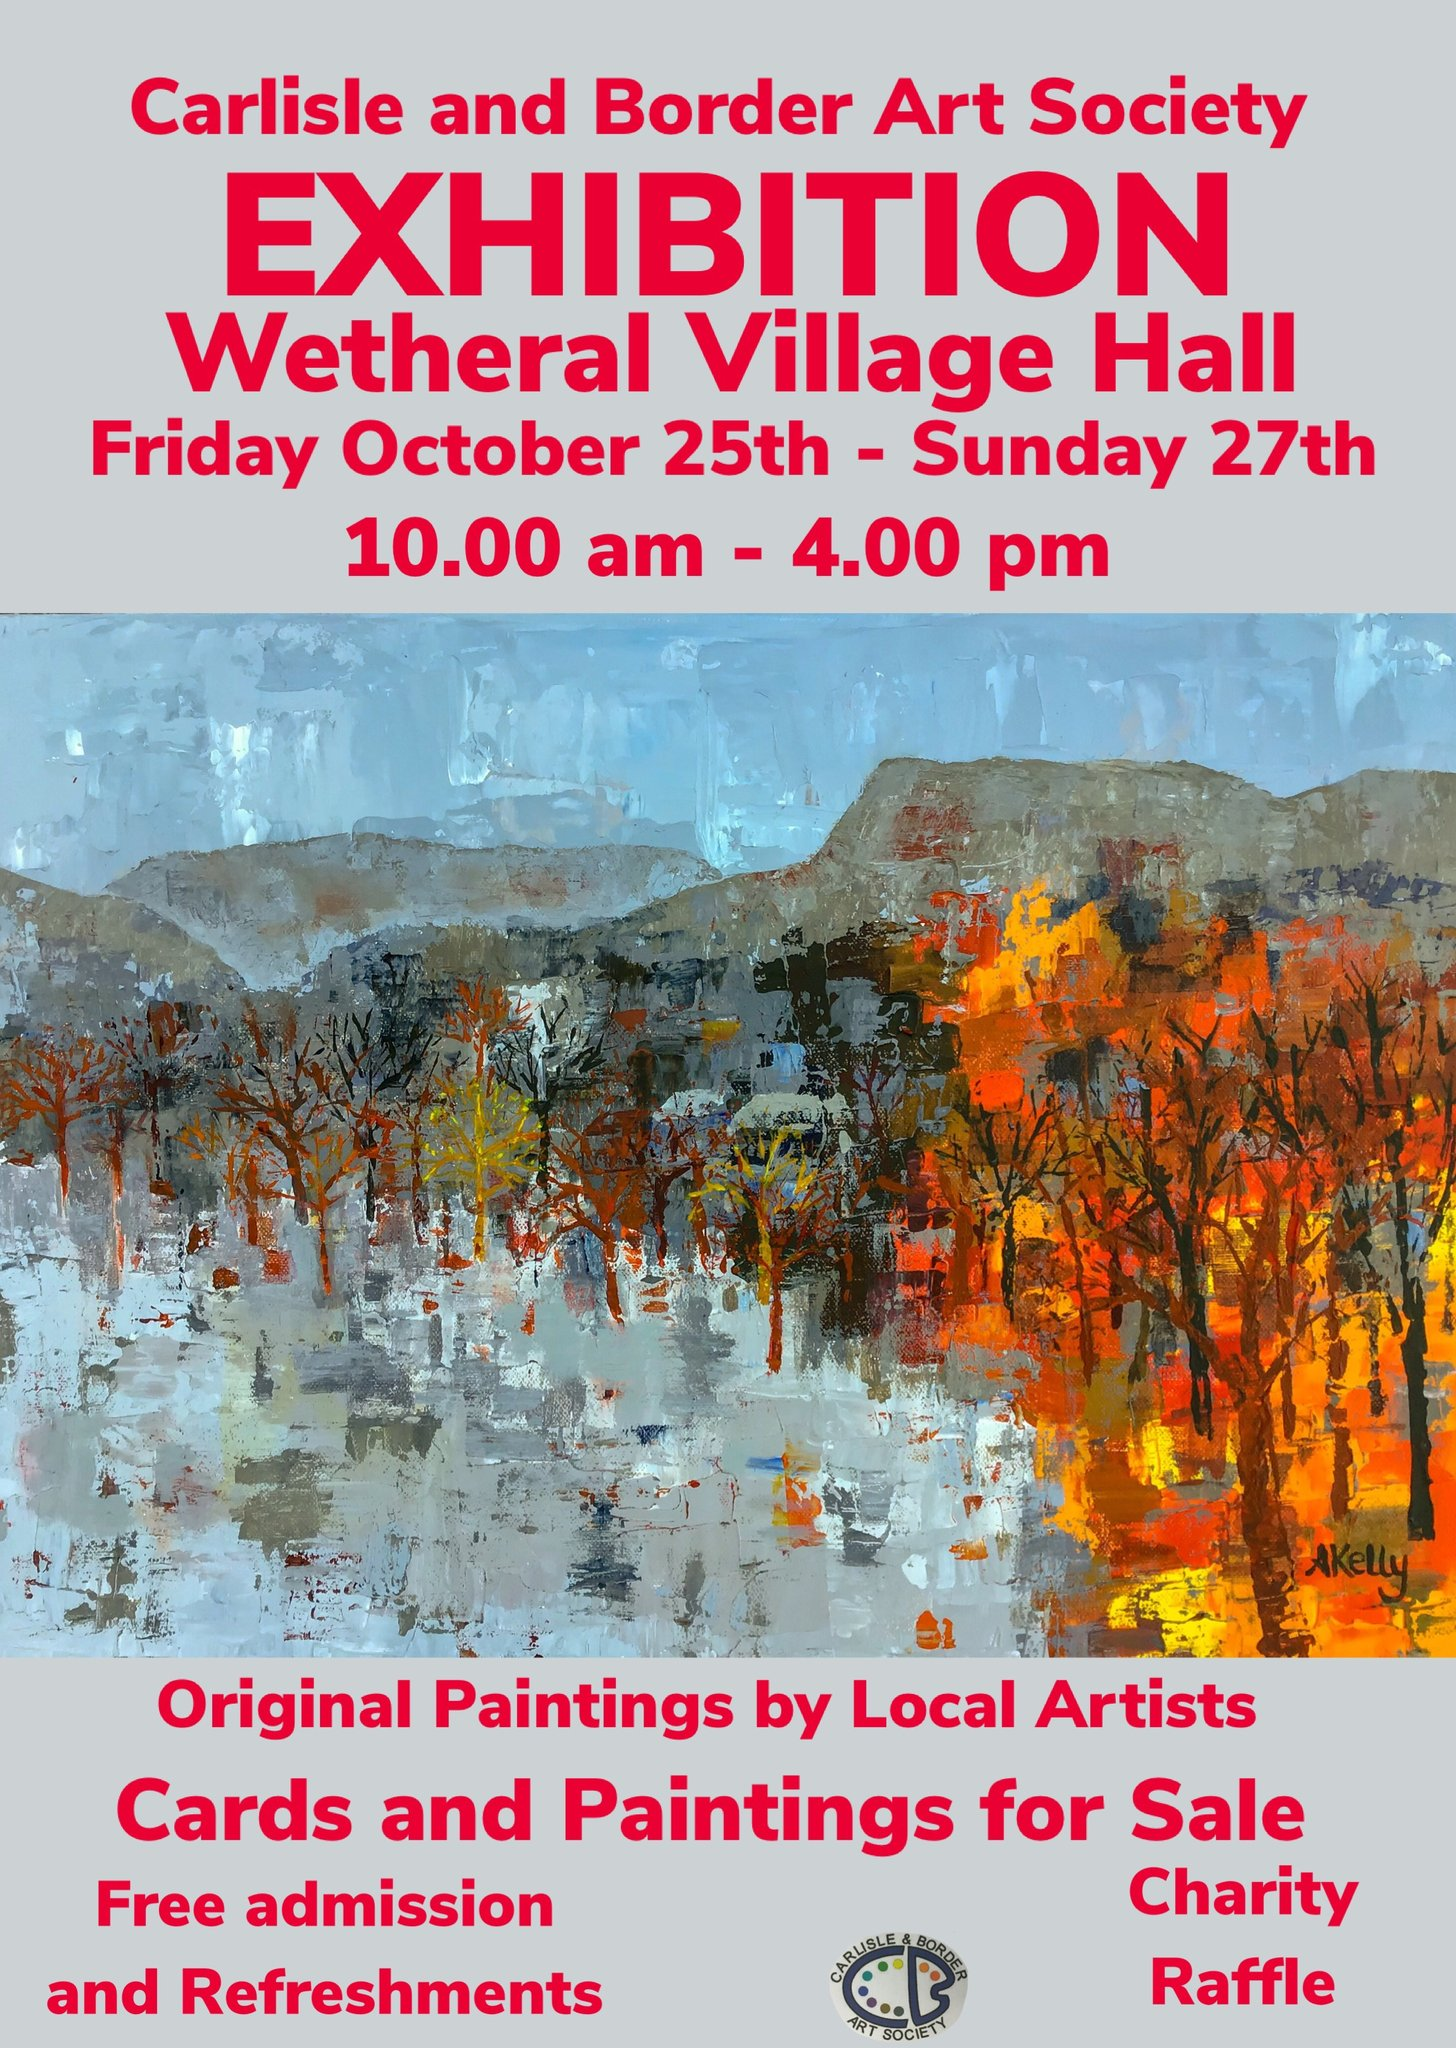 I will be showing some of my work here in a couple of weeks...#Cumbria #art #Edenvalley #Wetheral https://t.co/o7B0CbQqW4